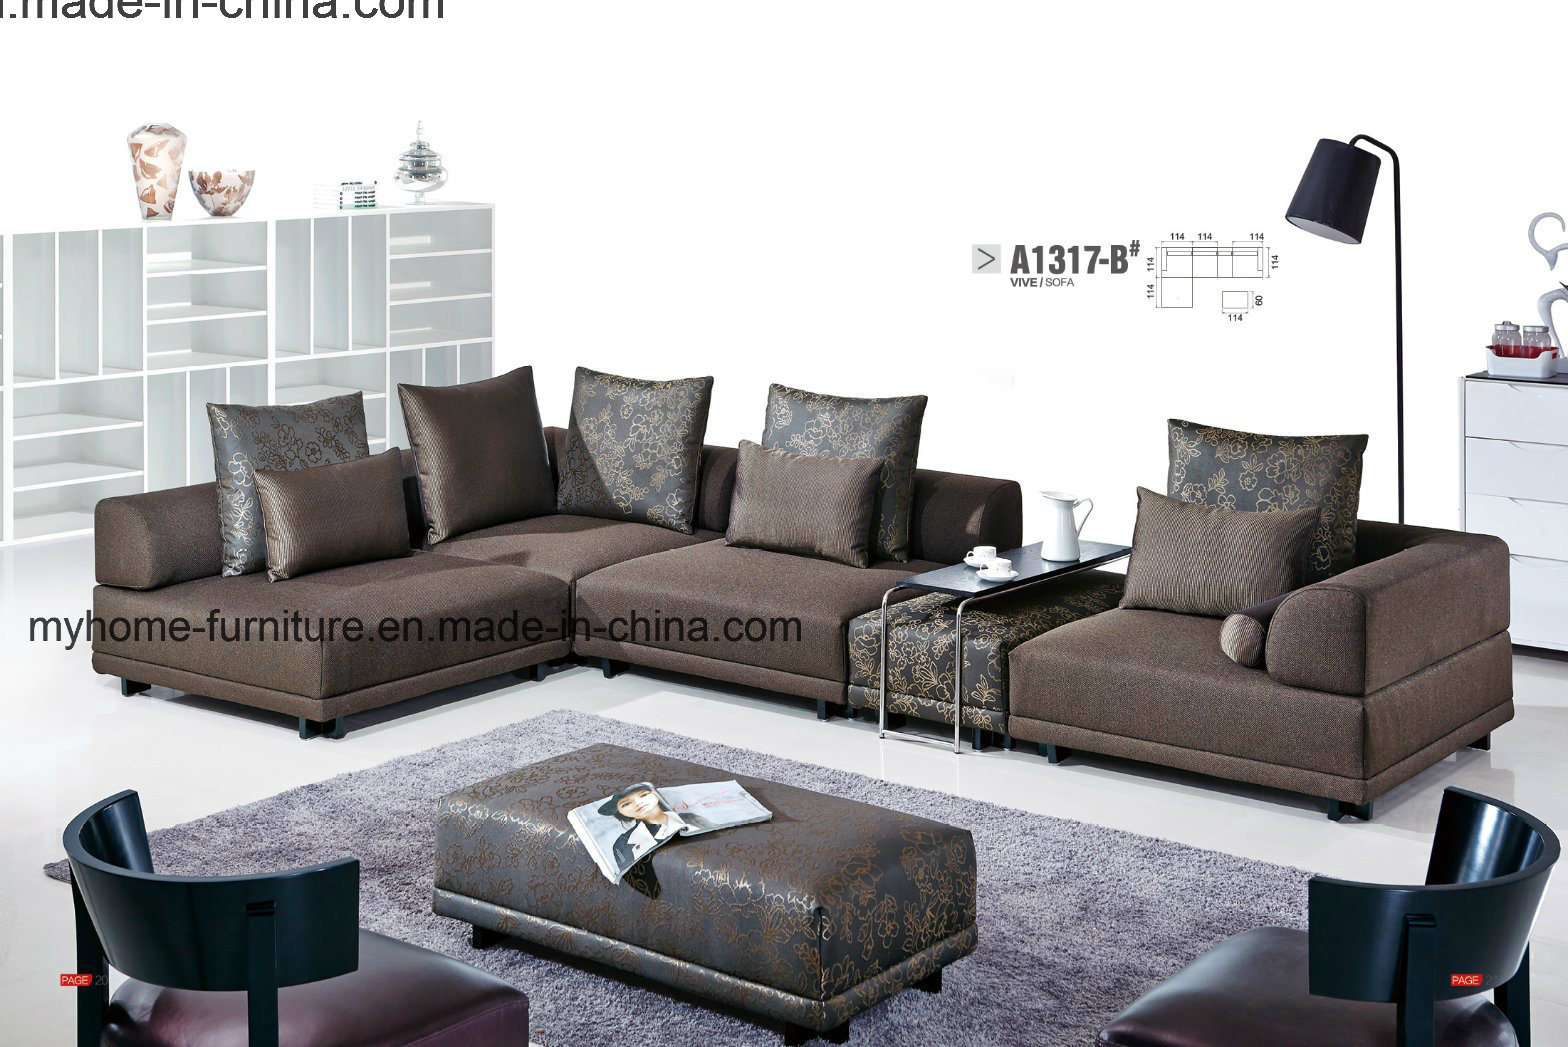 Surprising Hot Item Modern Italian Style Lazy Sofa Sectional Sofa Set Sectional Sofa Caraccident5 Cool Chair Designs And Ideas Caraccident5Info